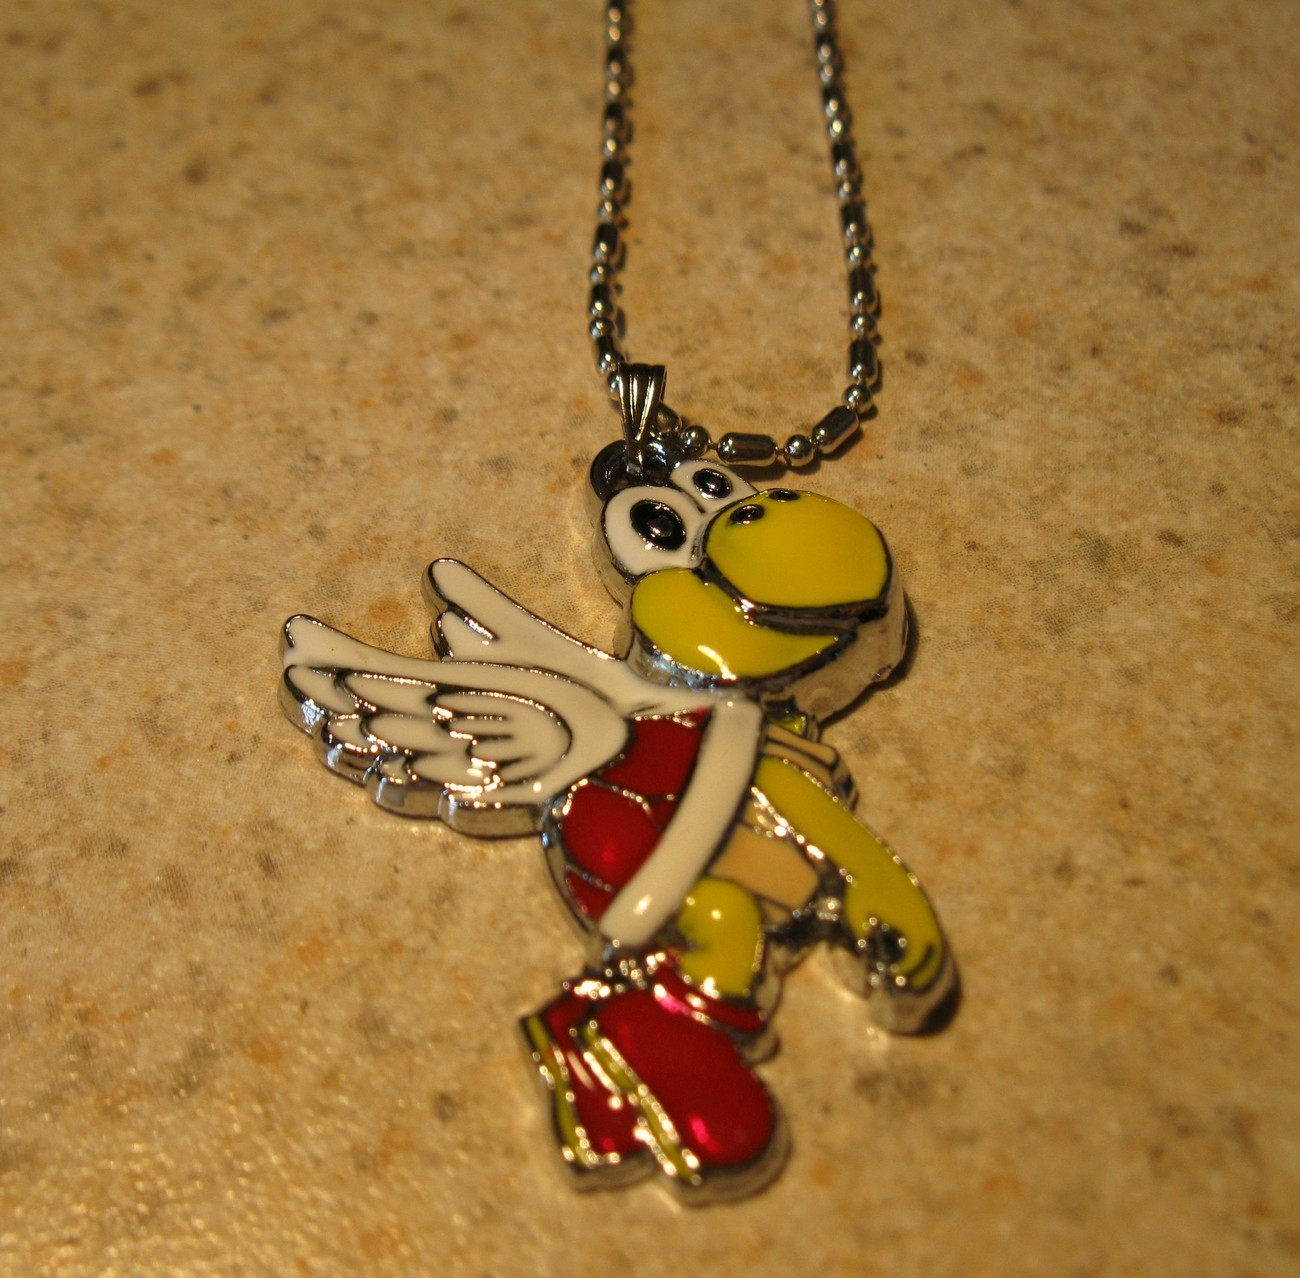 NECKLACE & PENDANT CHILDS RED FLYING KOOPA #490